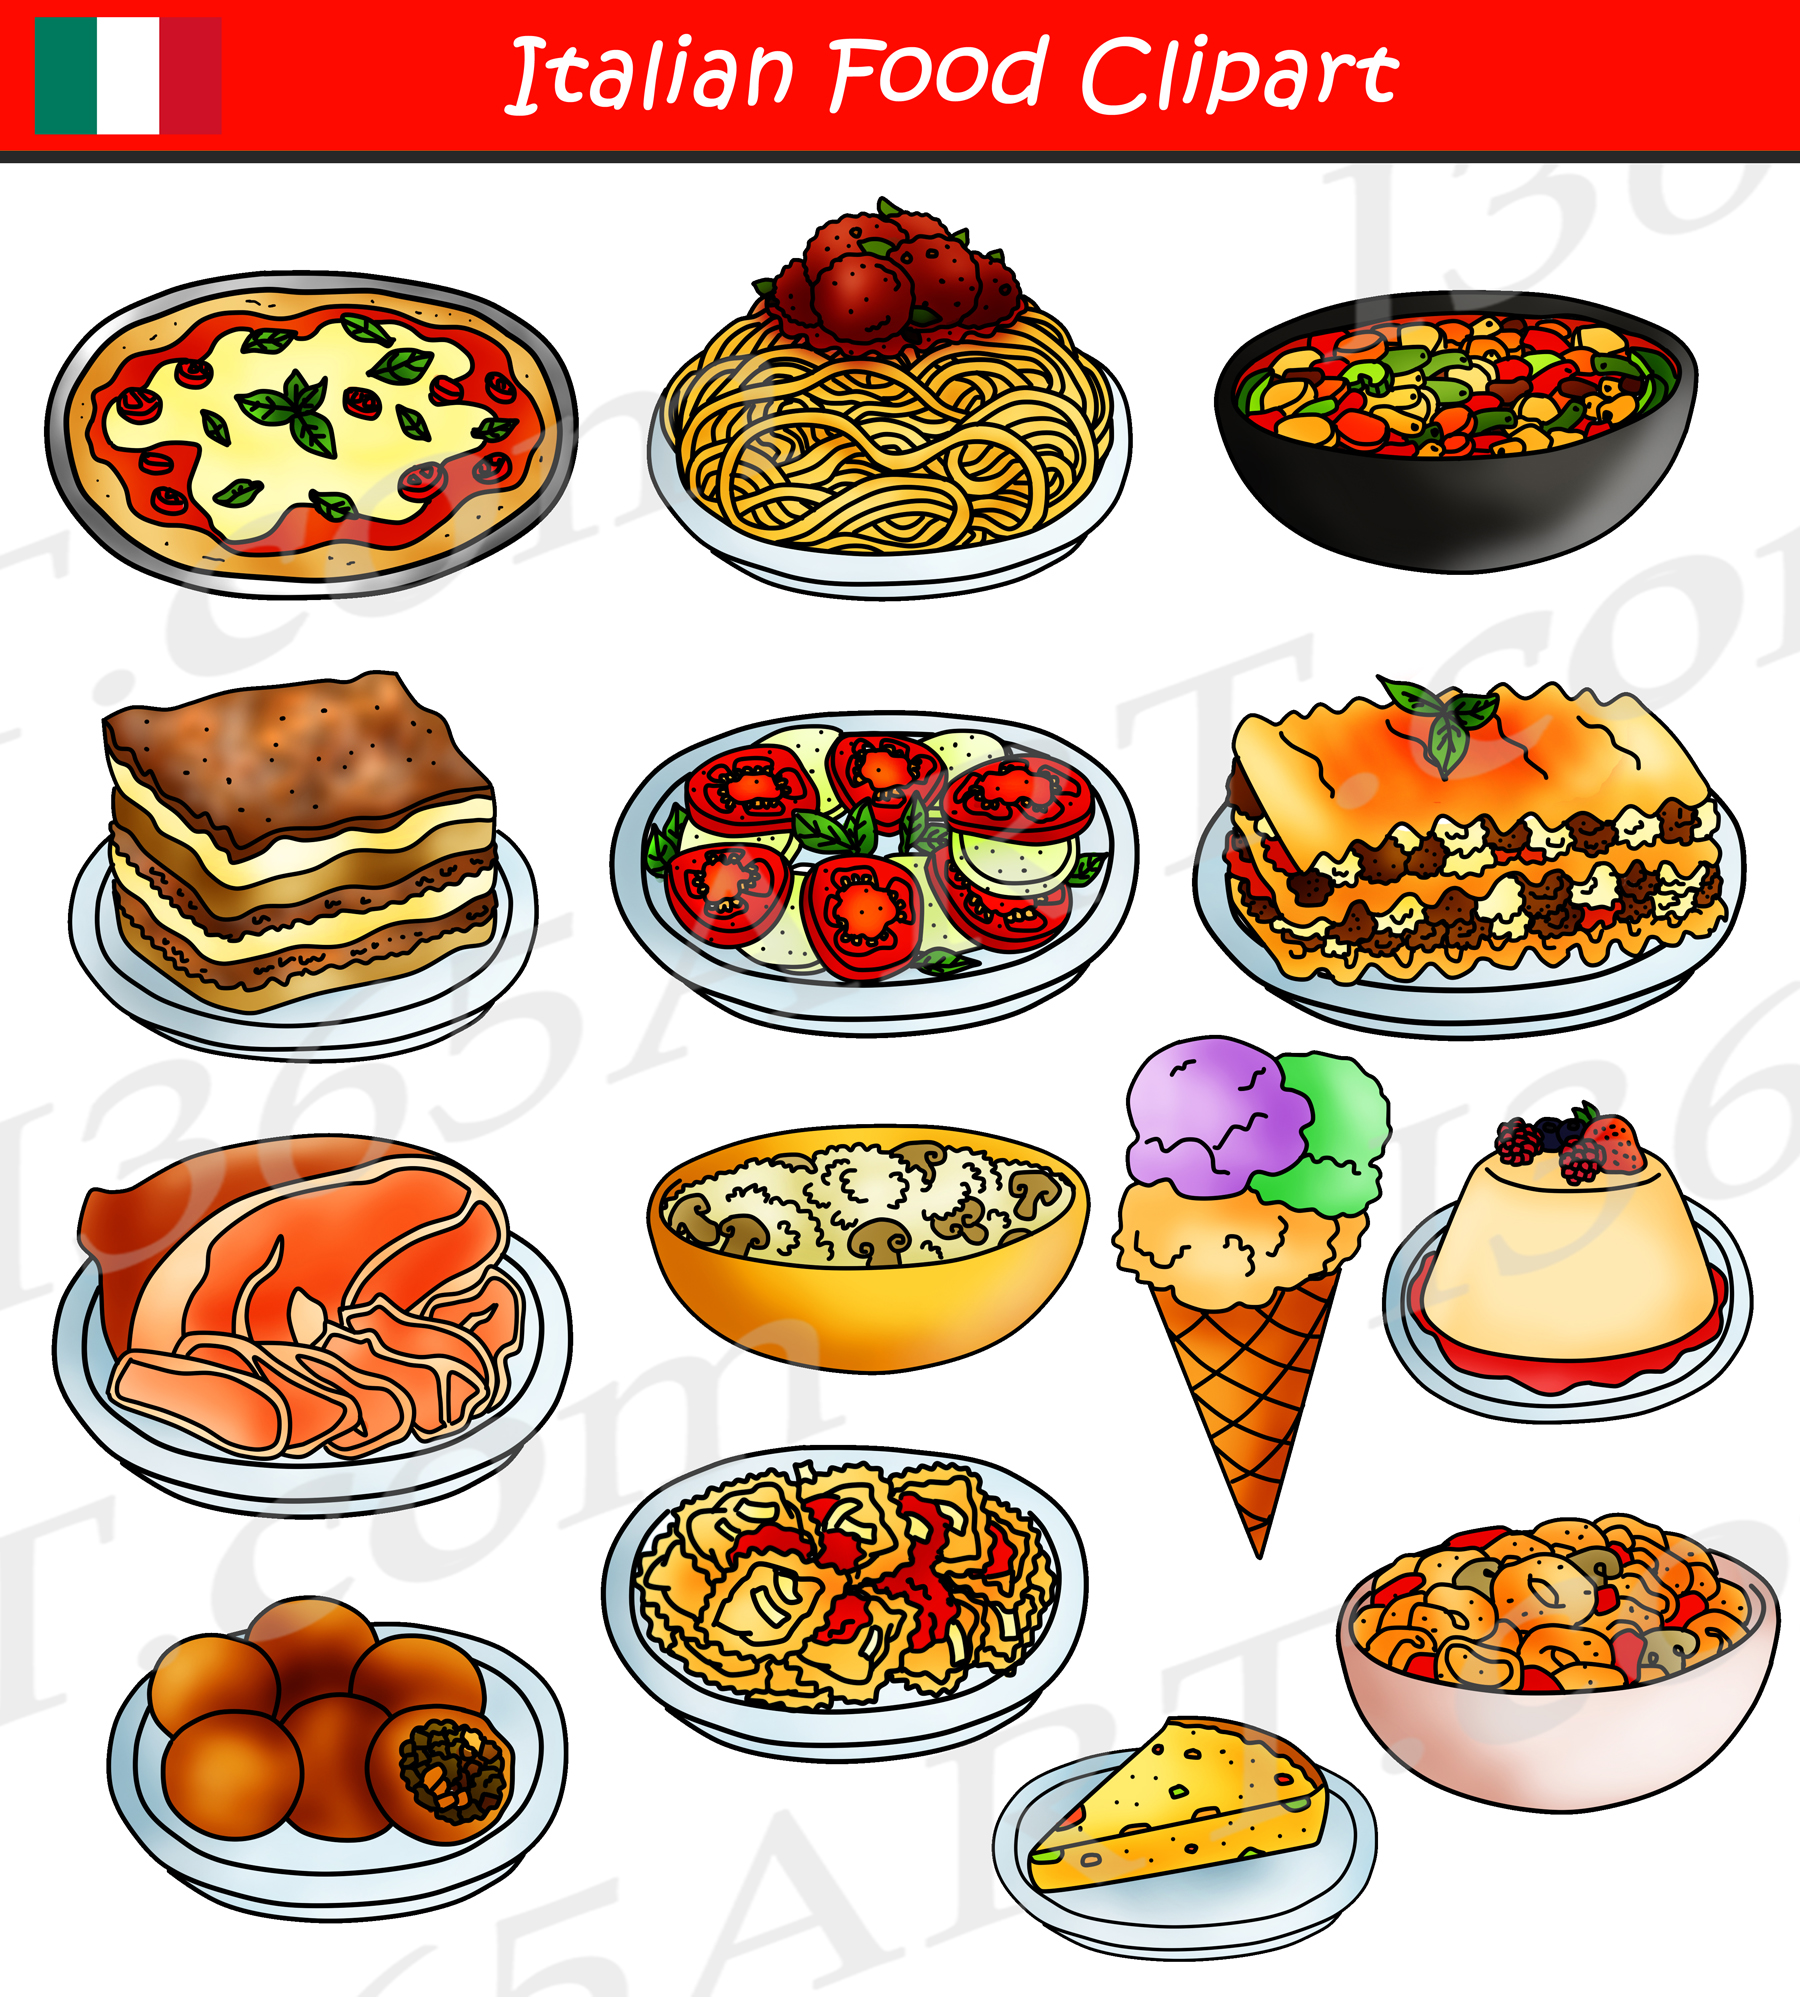 Italian Food Clipart International Food Graphics.